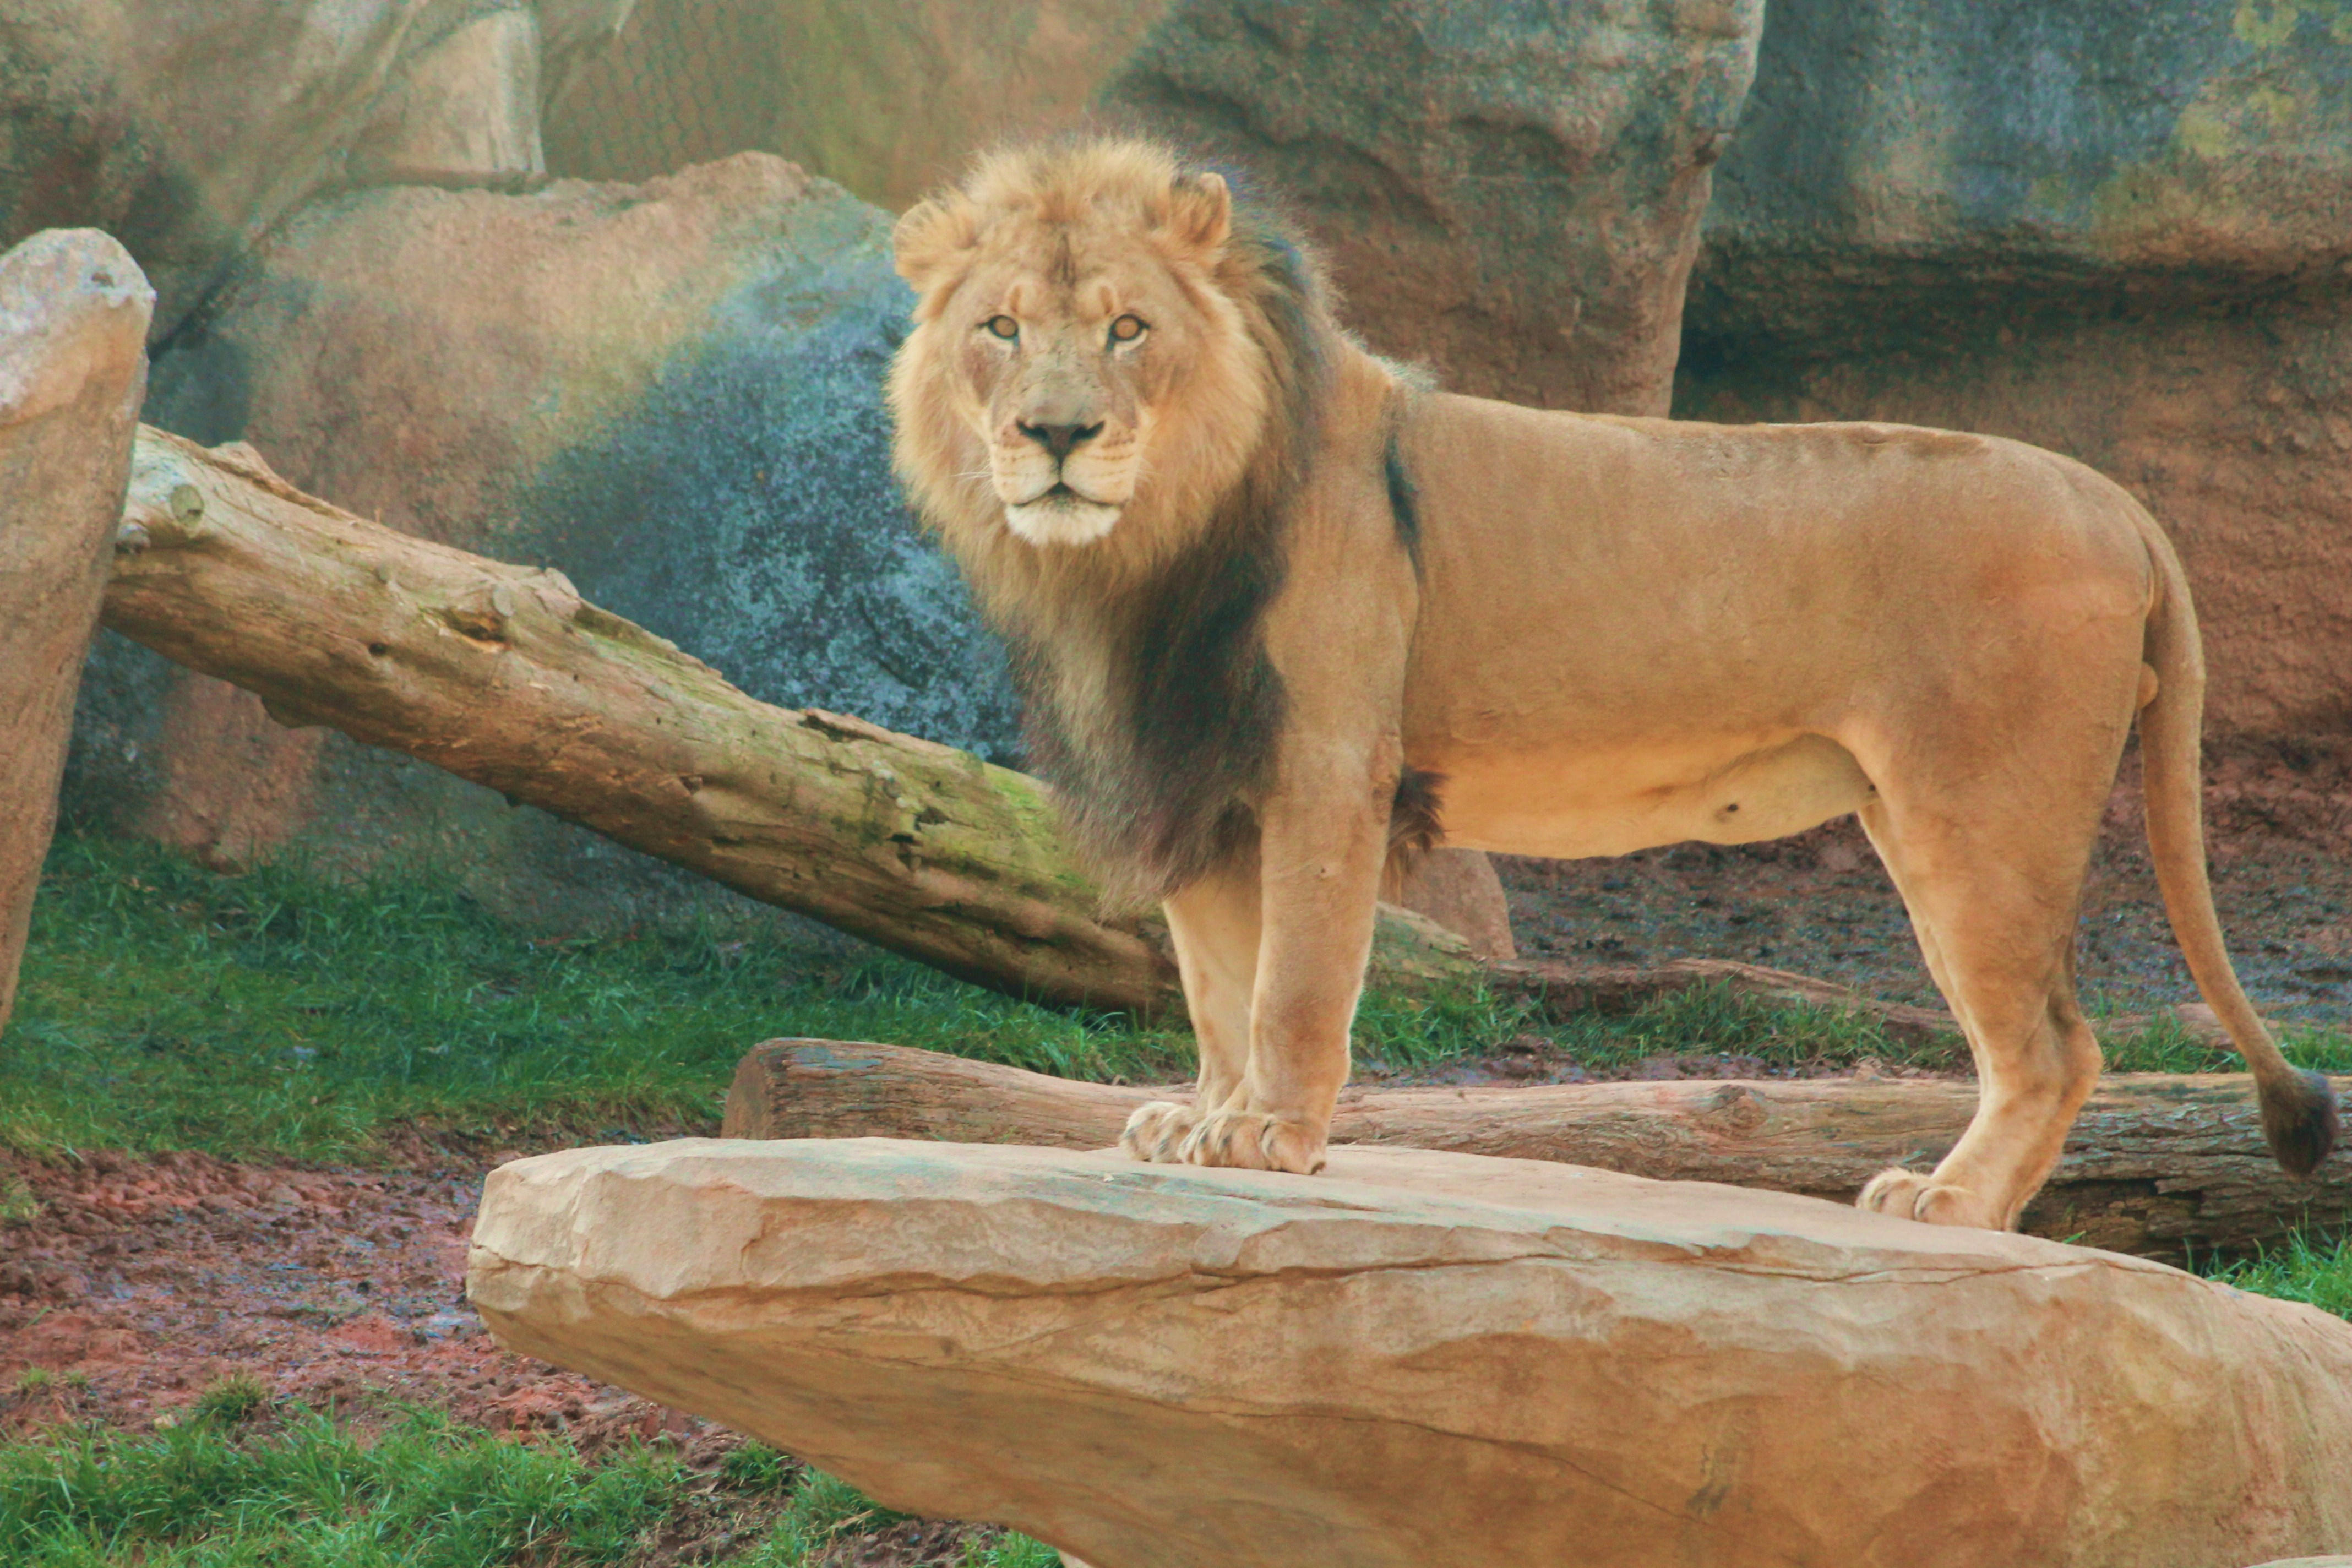 Male lion at Asheboro Zoo